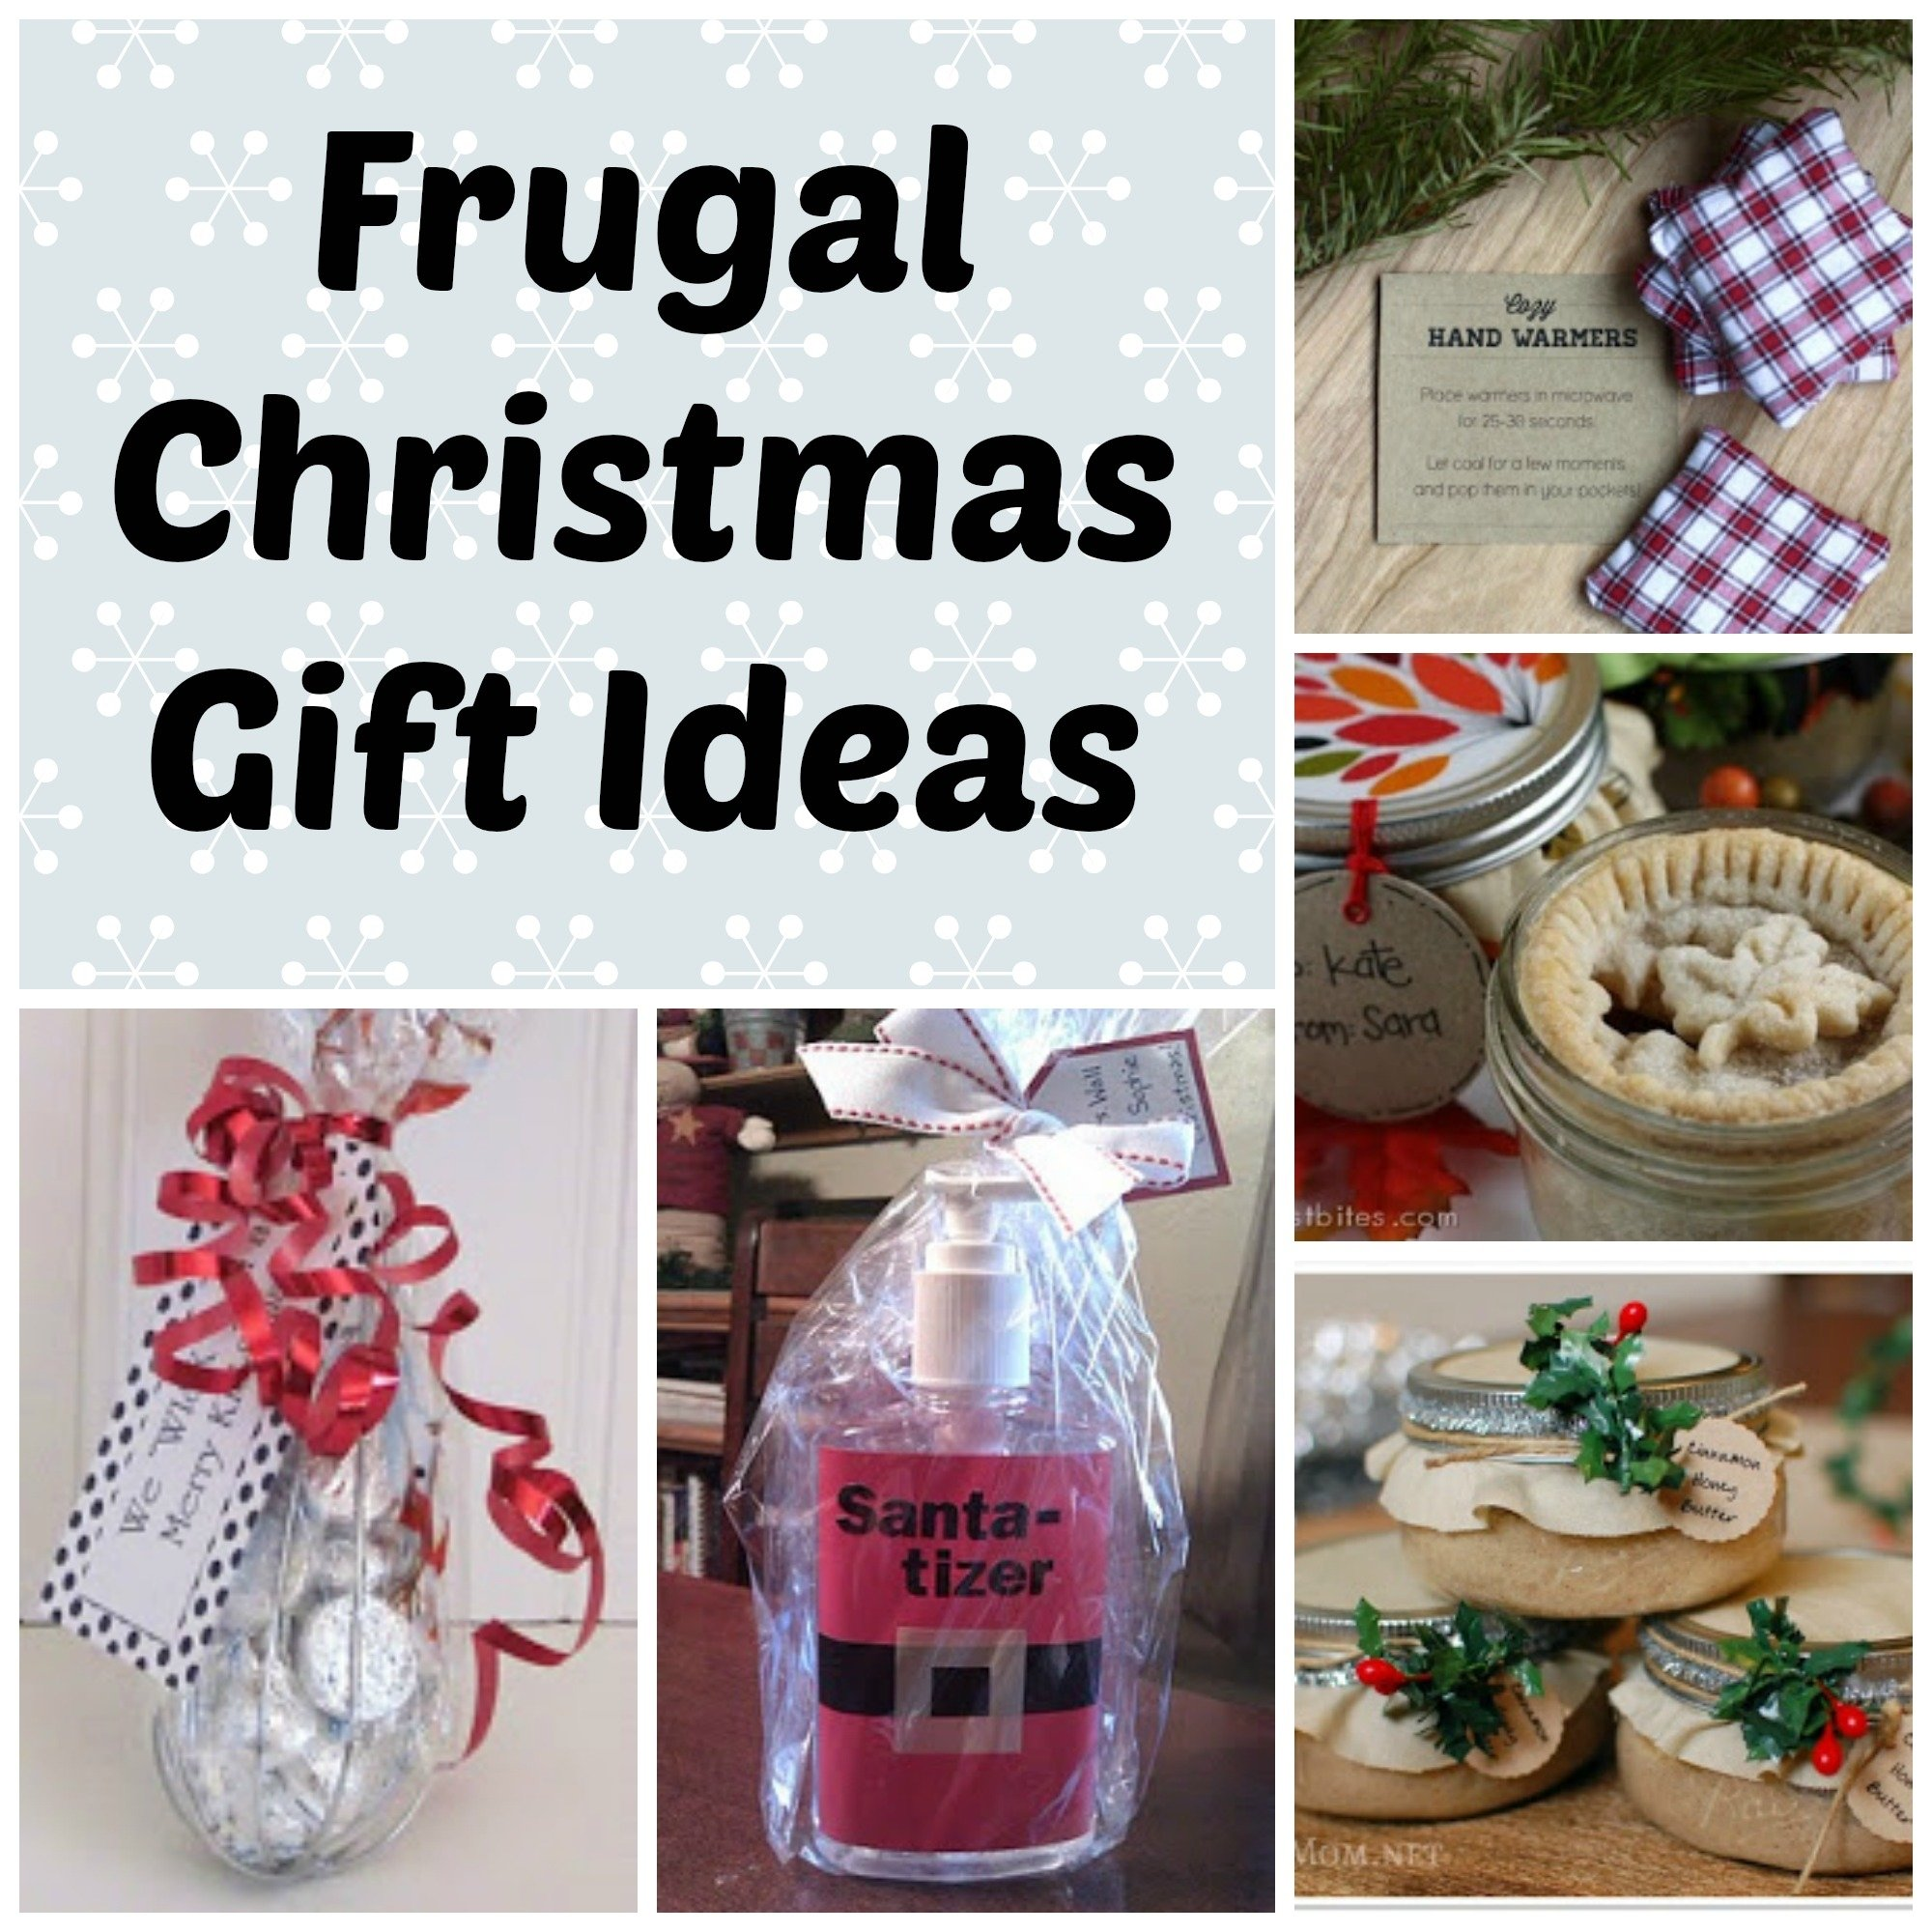 10 Awesome Family Gifts Ideas For Christmas frugal christmas gift ideas part 4 frugal christmas frugal and 11